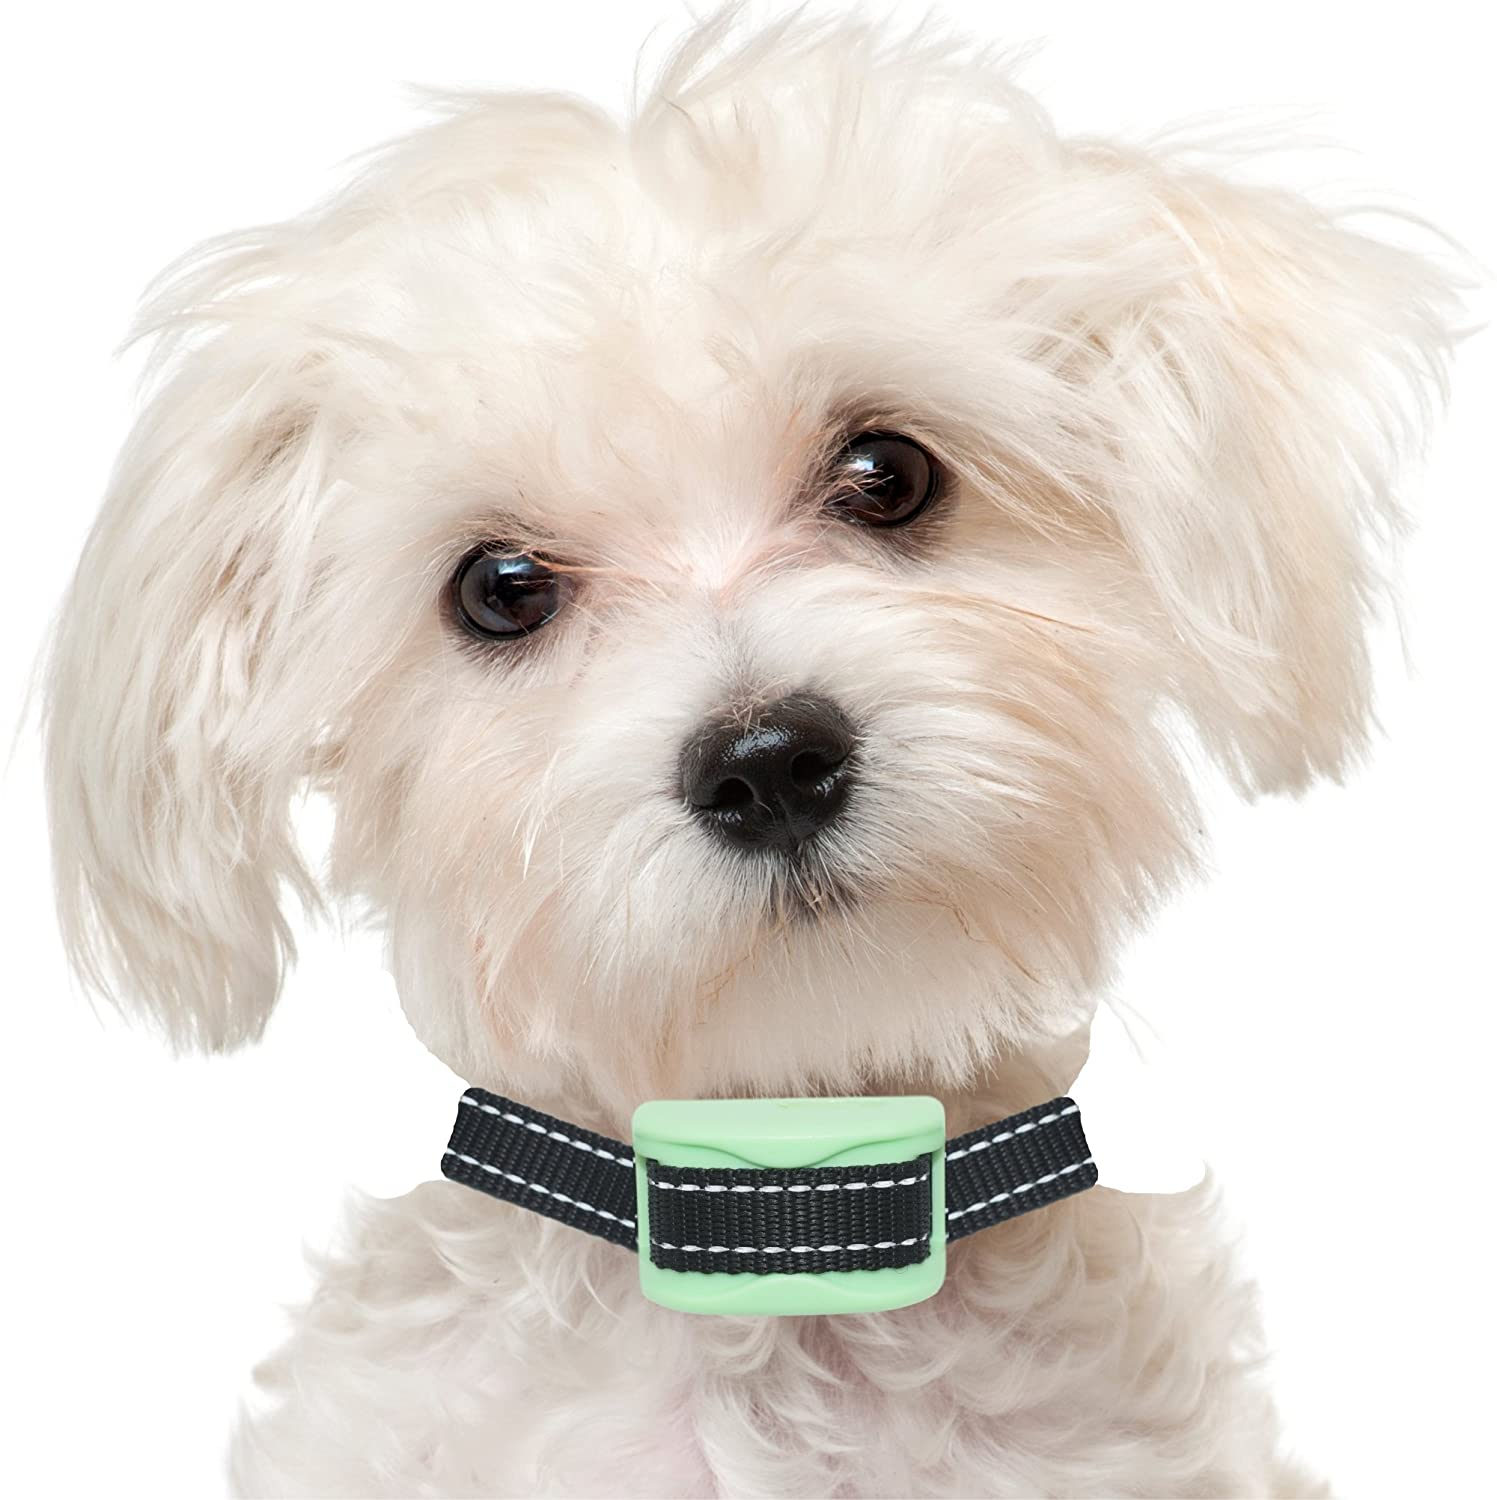 30 Off Our K9 Anti Bark Collar Sound And Vibration Pain